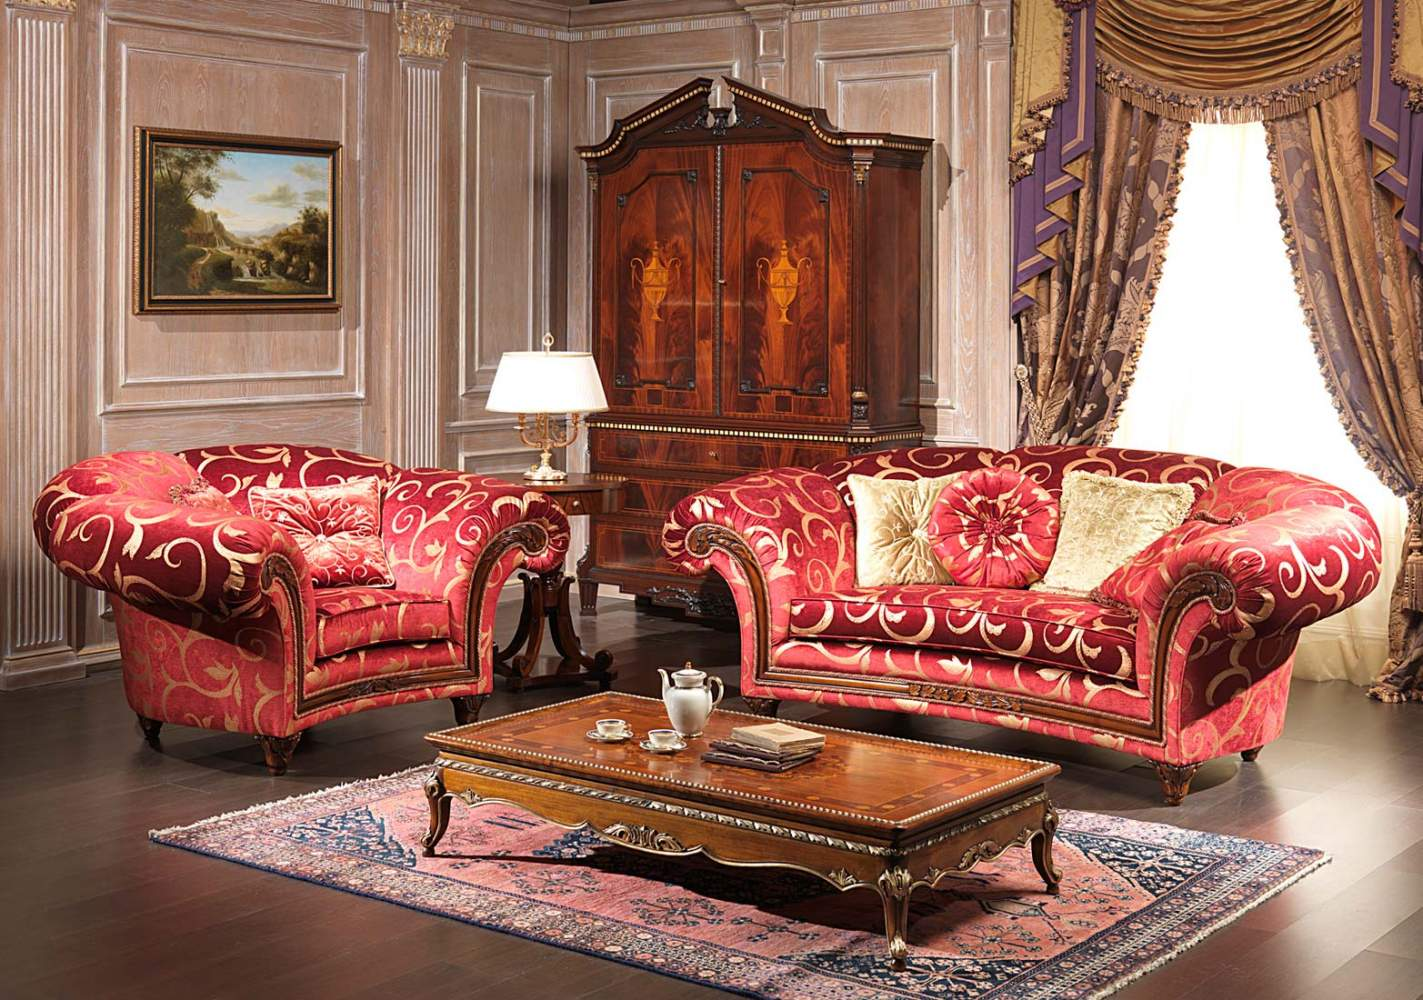 Classic living room Palace with small table